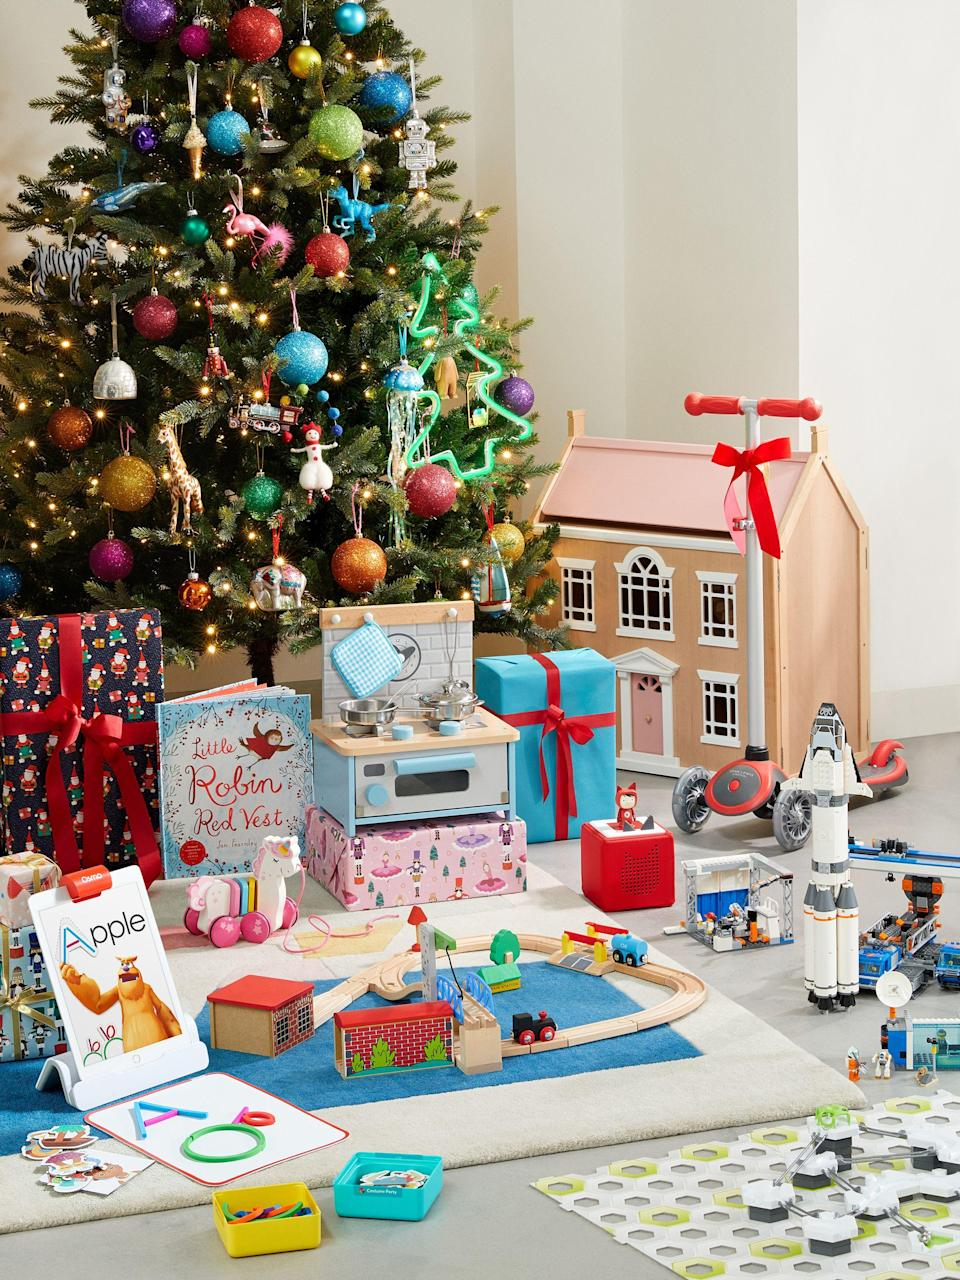 "<p><strong>John Lewis & Partners has just unveiled its top 10 must-have toys for <a href=""https://www.housebeautiful.com/uk/lifestyle/shopping/a28543649/selfridges-christmas-shop-opens-early-july/"" rel=""nofollow noopener"" target=""_blank"" data-ylk=""slk:Christmas"" class=""link rapid-noclick-resp"">Christmas</a> 2019. We've already had <a href=""https://www.housebeautiful.com/uk/lifestyle/shopping/g27783271/argos-christmas-toys-2019/"" rel=""nofollow noopener"" target=""_blank"" data-ylk=""slk:Argos' top toy predictions"" class=""link rapid-noclick-resp"">Argos' top toy predictions</a>, and now John Lewis has followed suit to help customers find the perfect gift for kids this year.</strong> </p><p>Some of the top toys for children includes a Leckford doll's house, a 50-piece train set and a mini kitchen, all of which are made from wood. Unicorn toys are also set to be high on Christmas wish lists this year, as are foldable scooters. <br><br>'As we all become more aware of our impact on the environment we are seeing a move away from products such as slime and collectables in favour of more sustainable toys that have limitless play value and can be passed down to younger children,' says Harry Boughton, Toy Buyer at John Lewis. 'Parents are also telling us that they want to buy toys which encourage their children to spend more time playing with educational games and reading.'<br><br>Will you be getting your hands on these must-have toys? Some aren't in the shops just yet, so keep an eye open for when they land on the shelves.</p>"